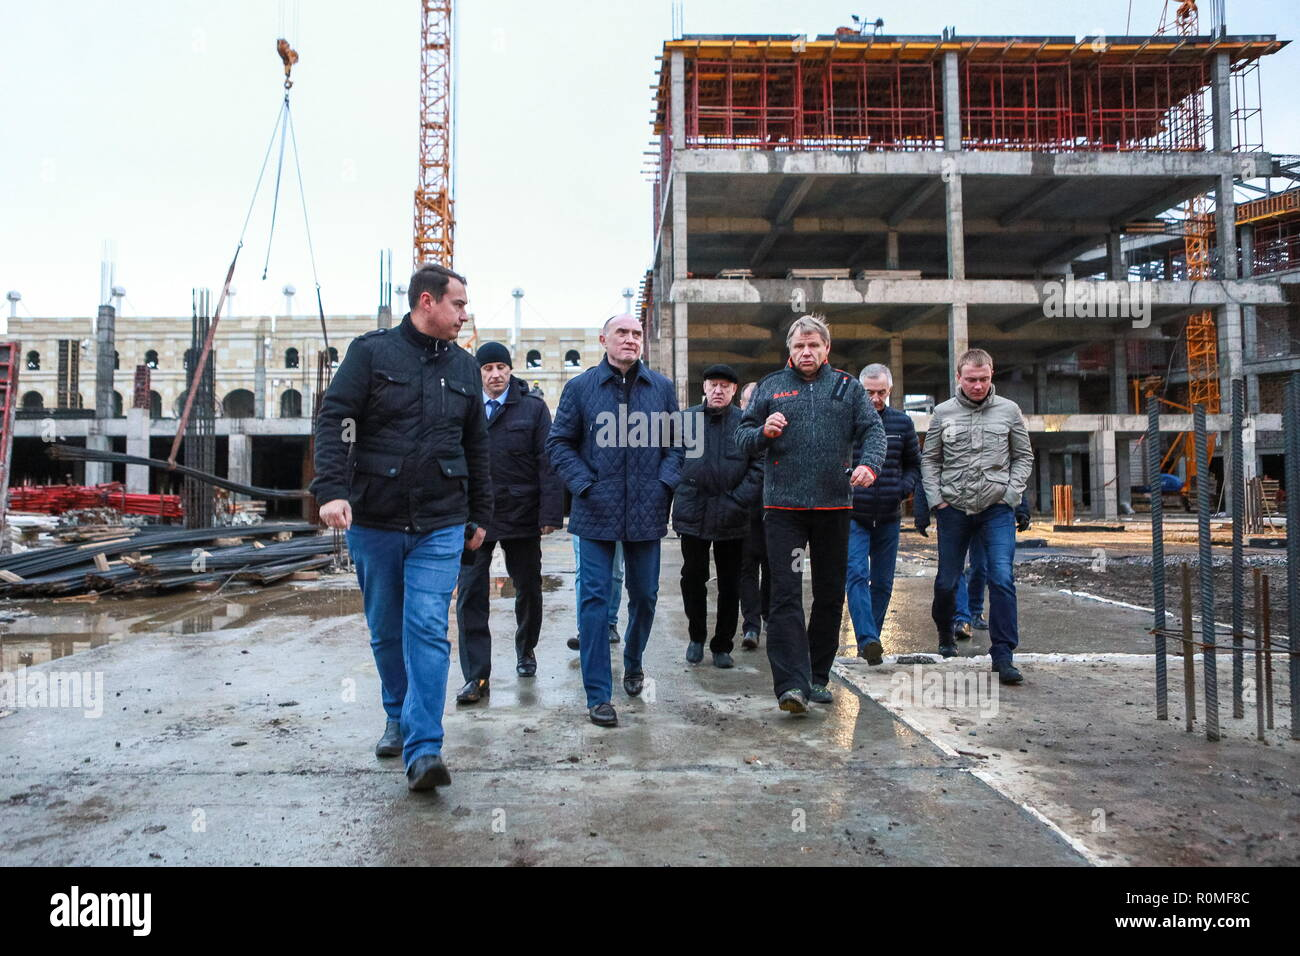 Chelyabinsk, Russia. 04th Nov, 2018. CHELYABINSK, RUSSIA - NOVEMBER 4, 2018: The Governor of Chelyabinsk Region Boris Dubrovsky (3rd L) visits the construction site of the Taganai 2020 Congress Hall at Ulitsa Truda Street; in 2020, Chelyabinsk is going to host an SCO summit and a BRICS summit. Nail Fattakhov/TASS Credit: ITAR-TASS News Agency/Alamy Live News - Stock Image